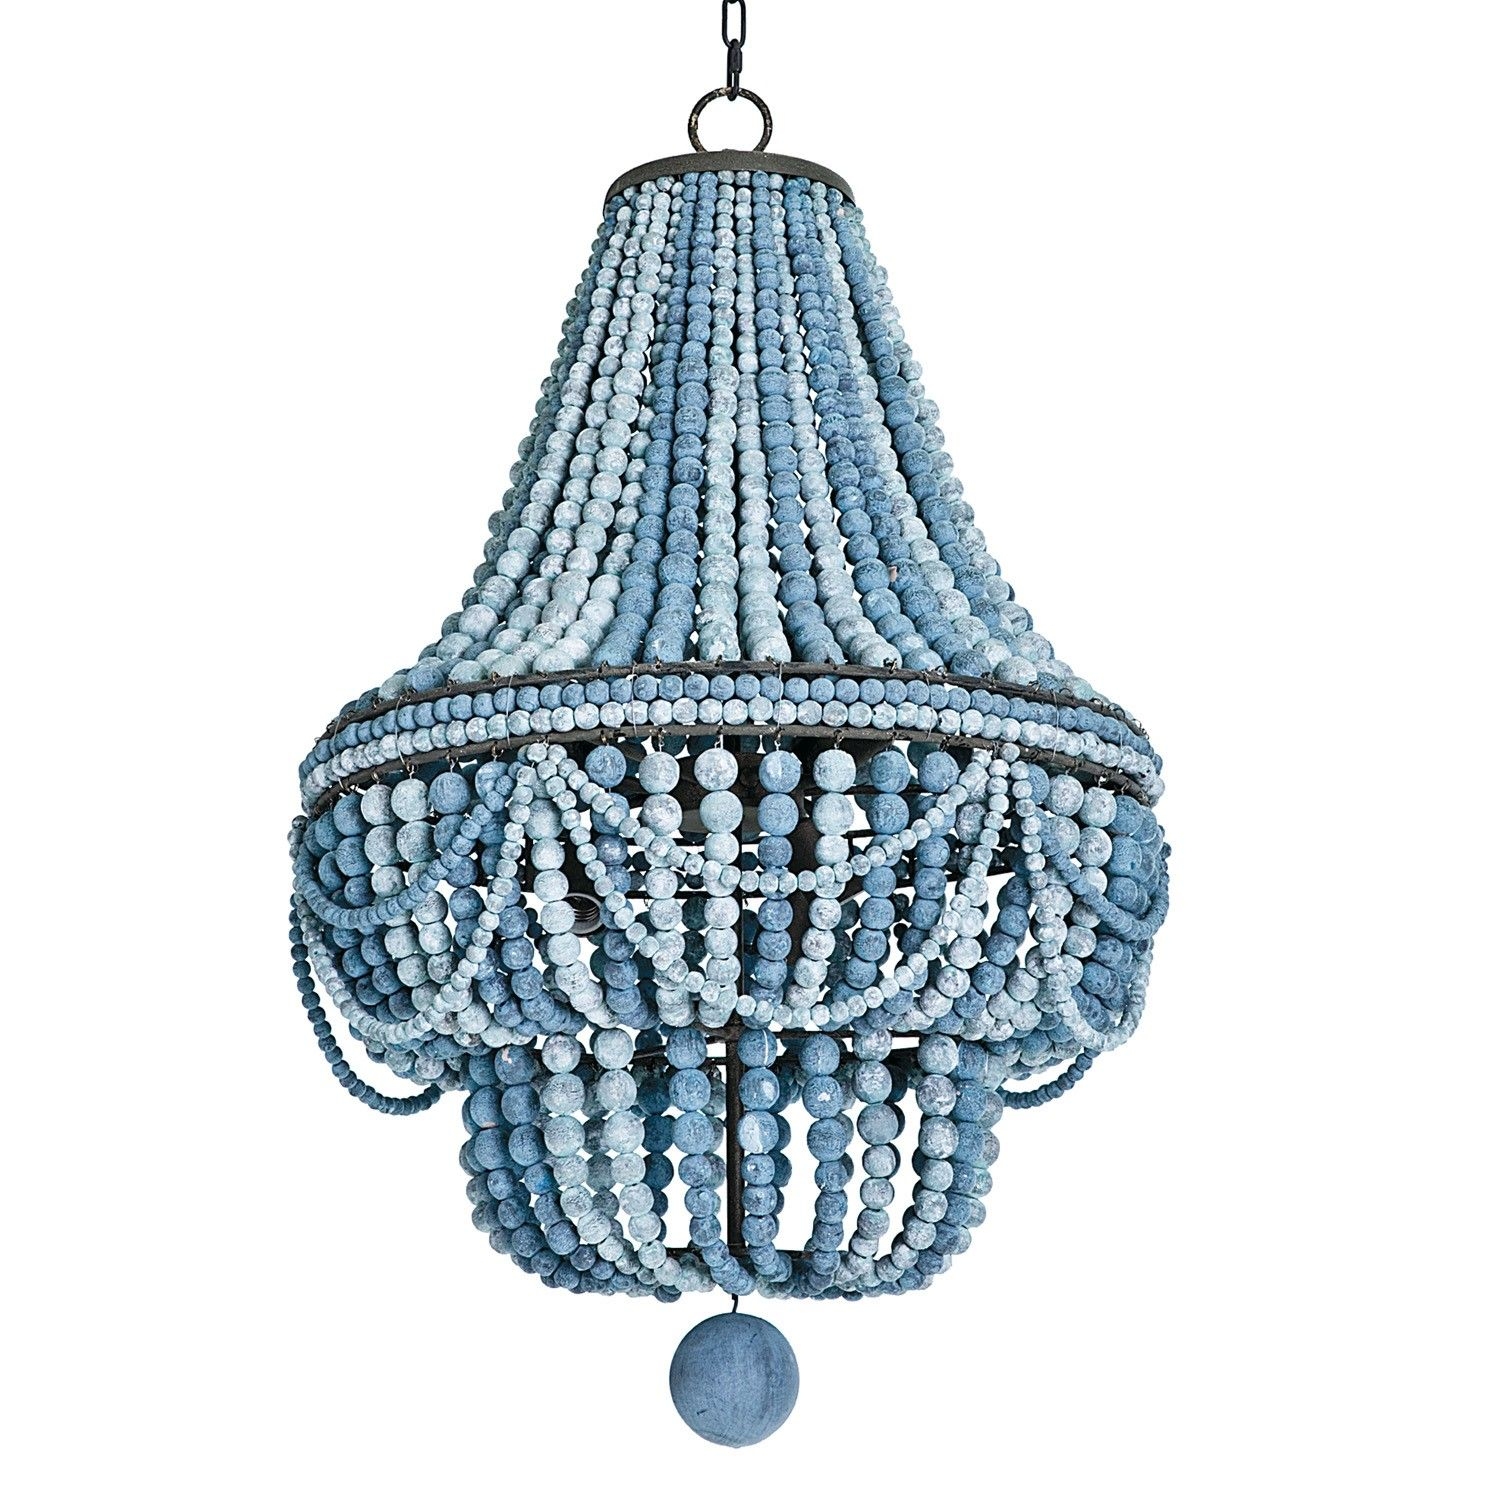 Redefine contemporary style with the Malibu Chandelier from Regina